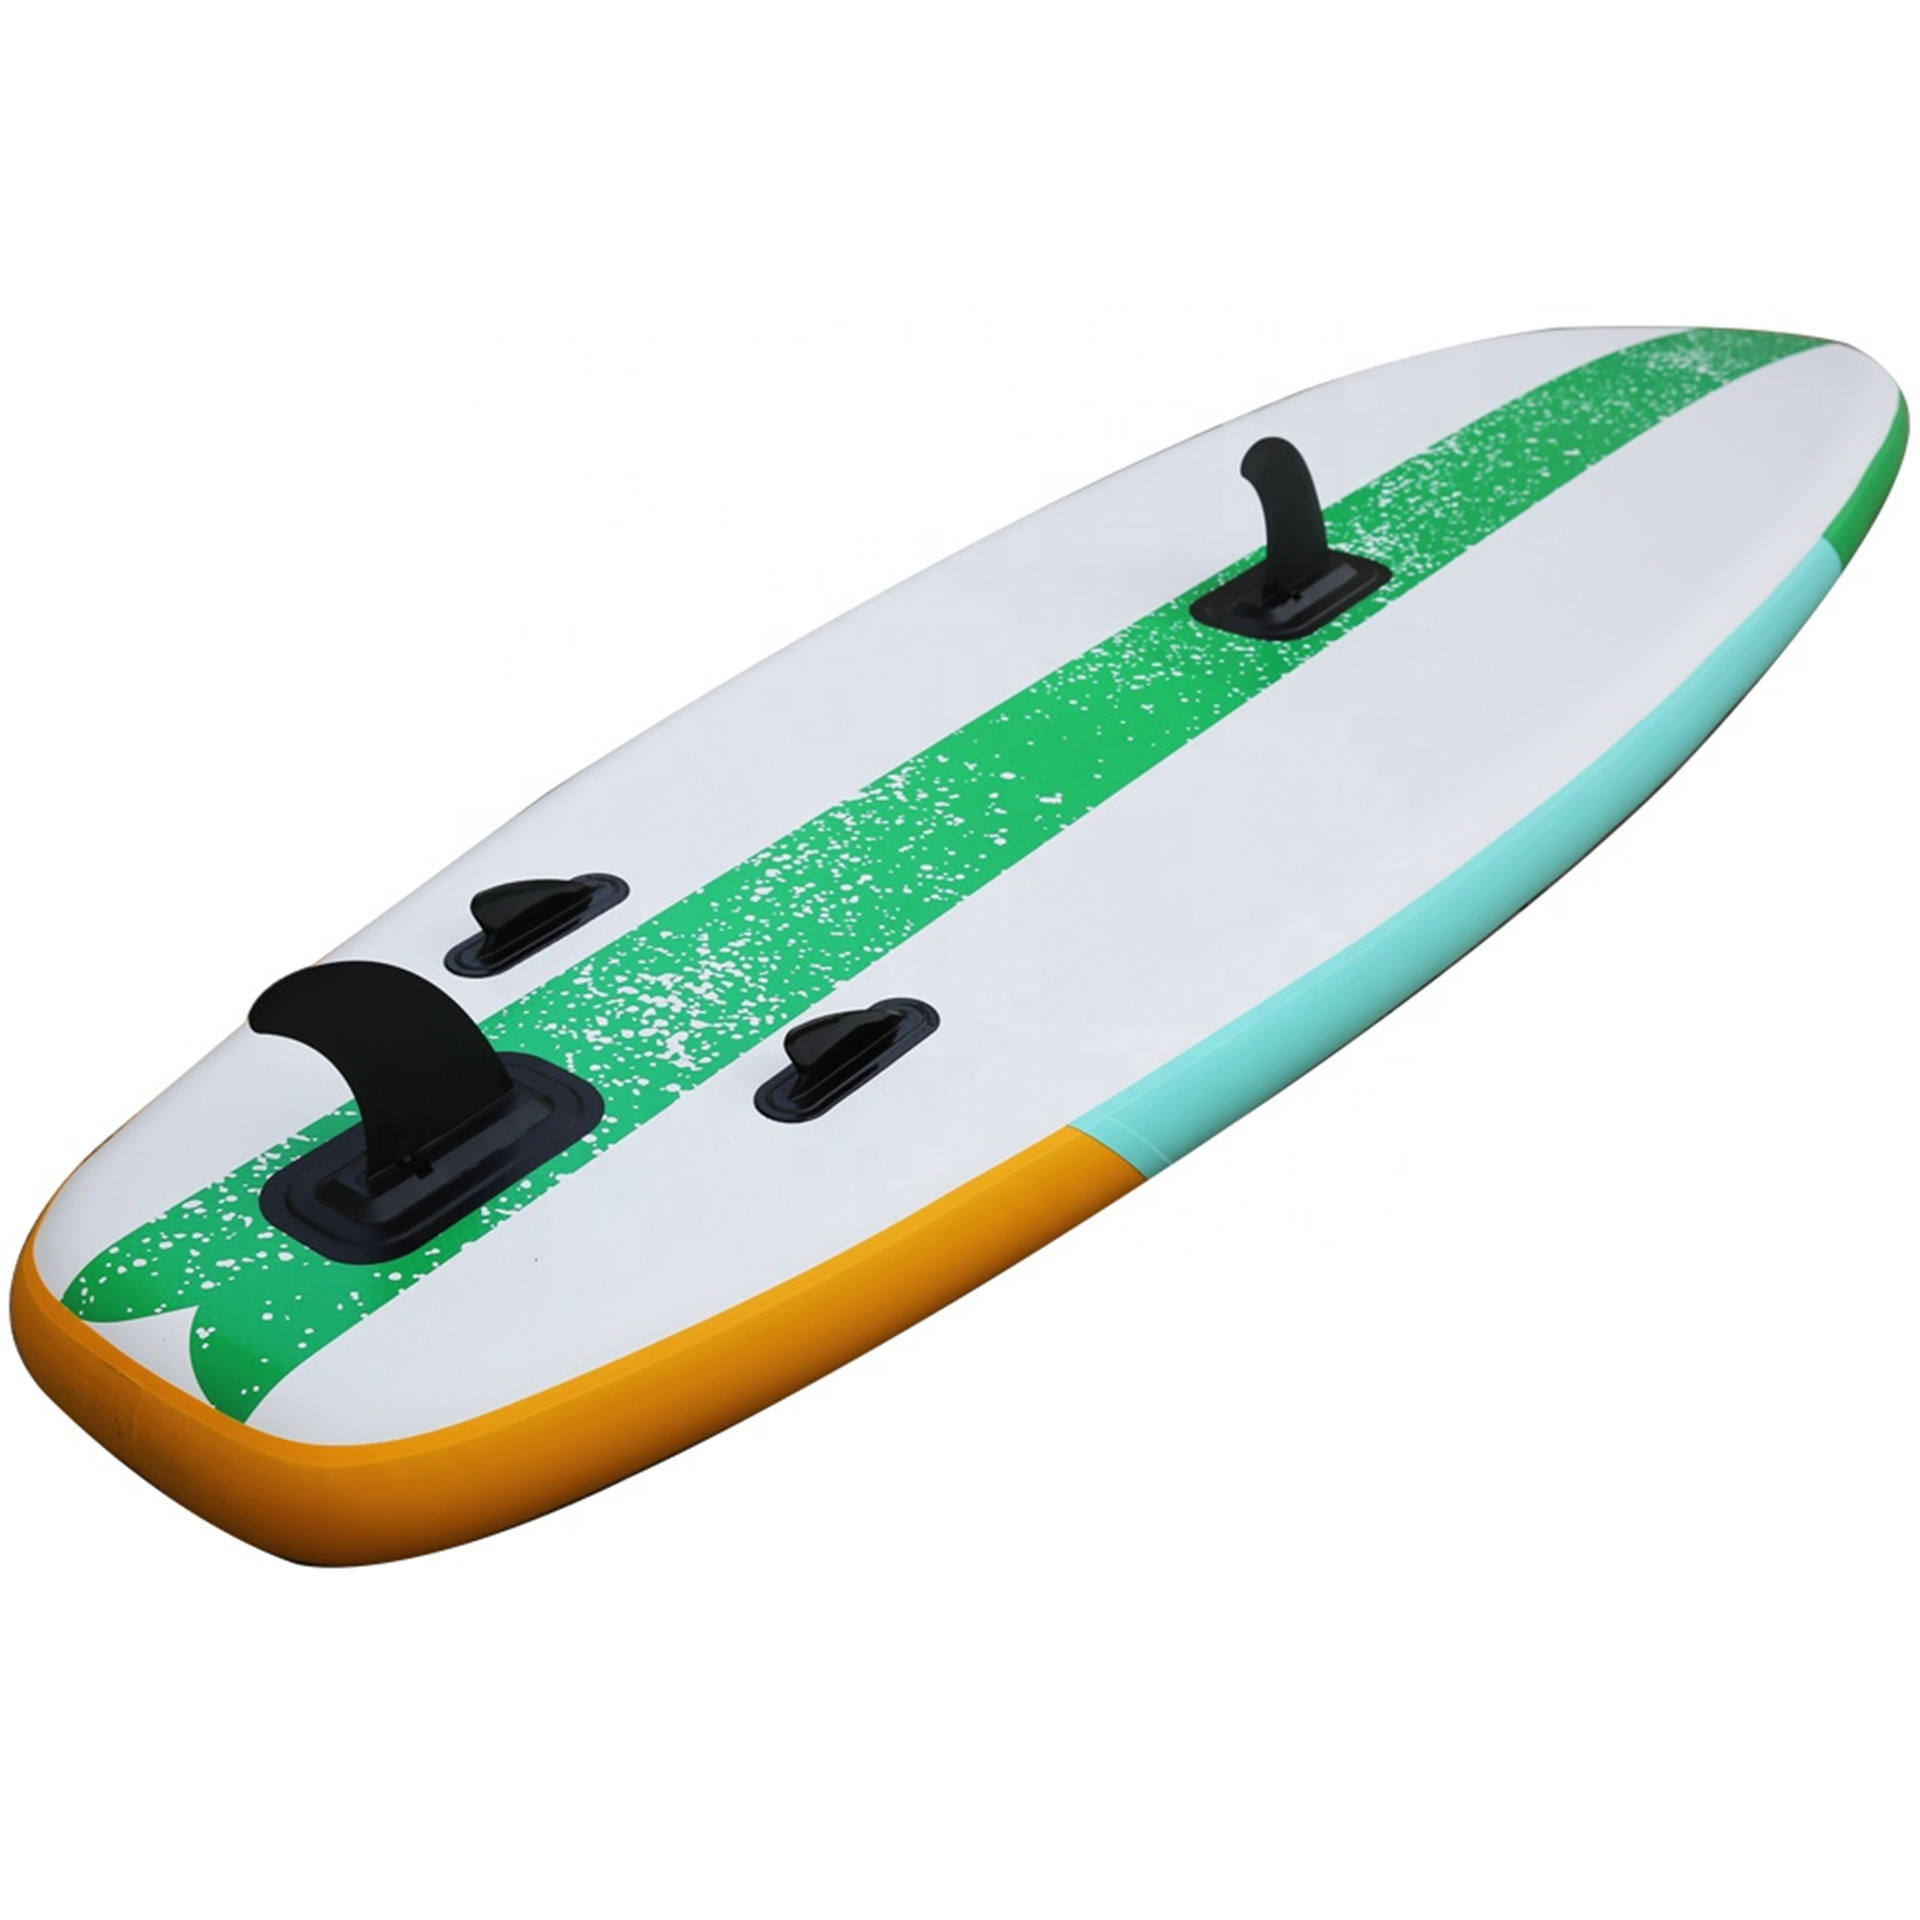 High quality Manufacturer Supplier Windsurfing Big Size Wind Sail Sup standup paddle board